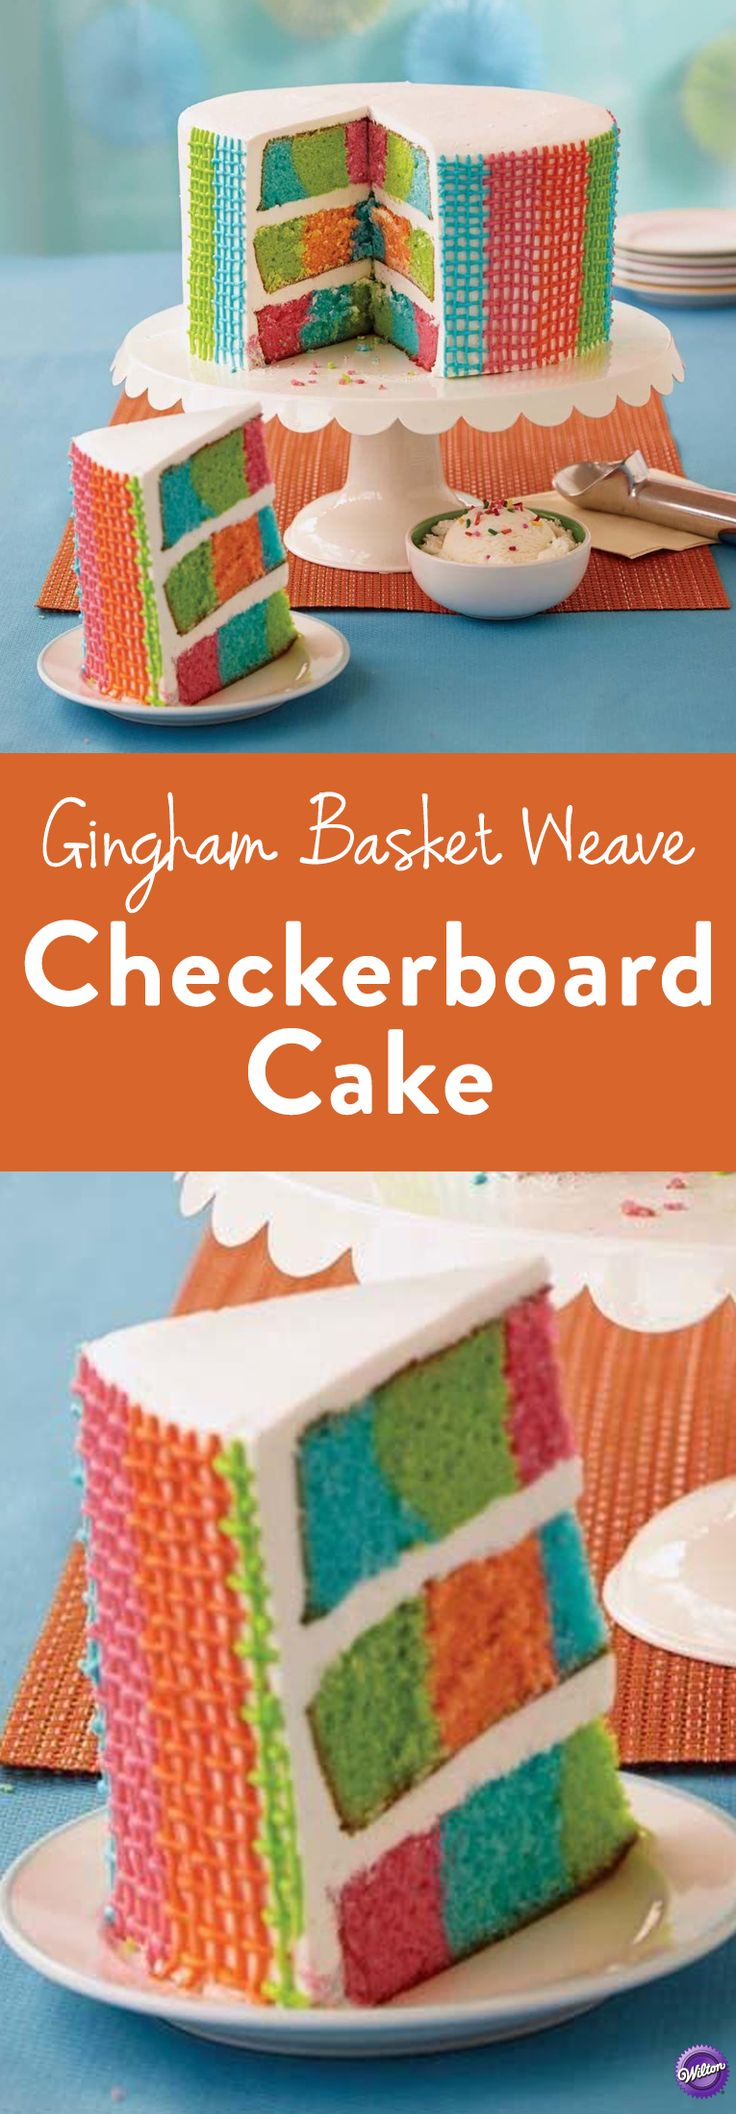 Learn how to make this adorable gingham basket weave cake. The beautiful and bright colors in the gorgeous basket weave pattern makes this the perfect centerpiece for any a shower, children's birthday party or any other spring or summer celebration.